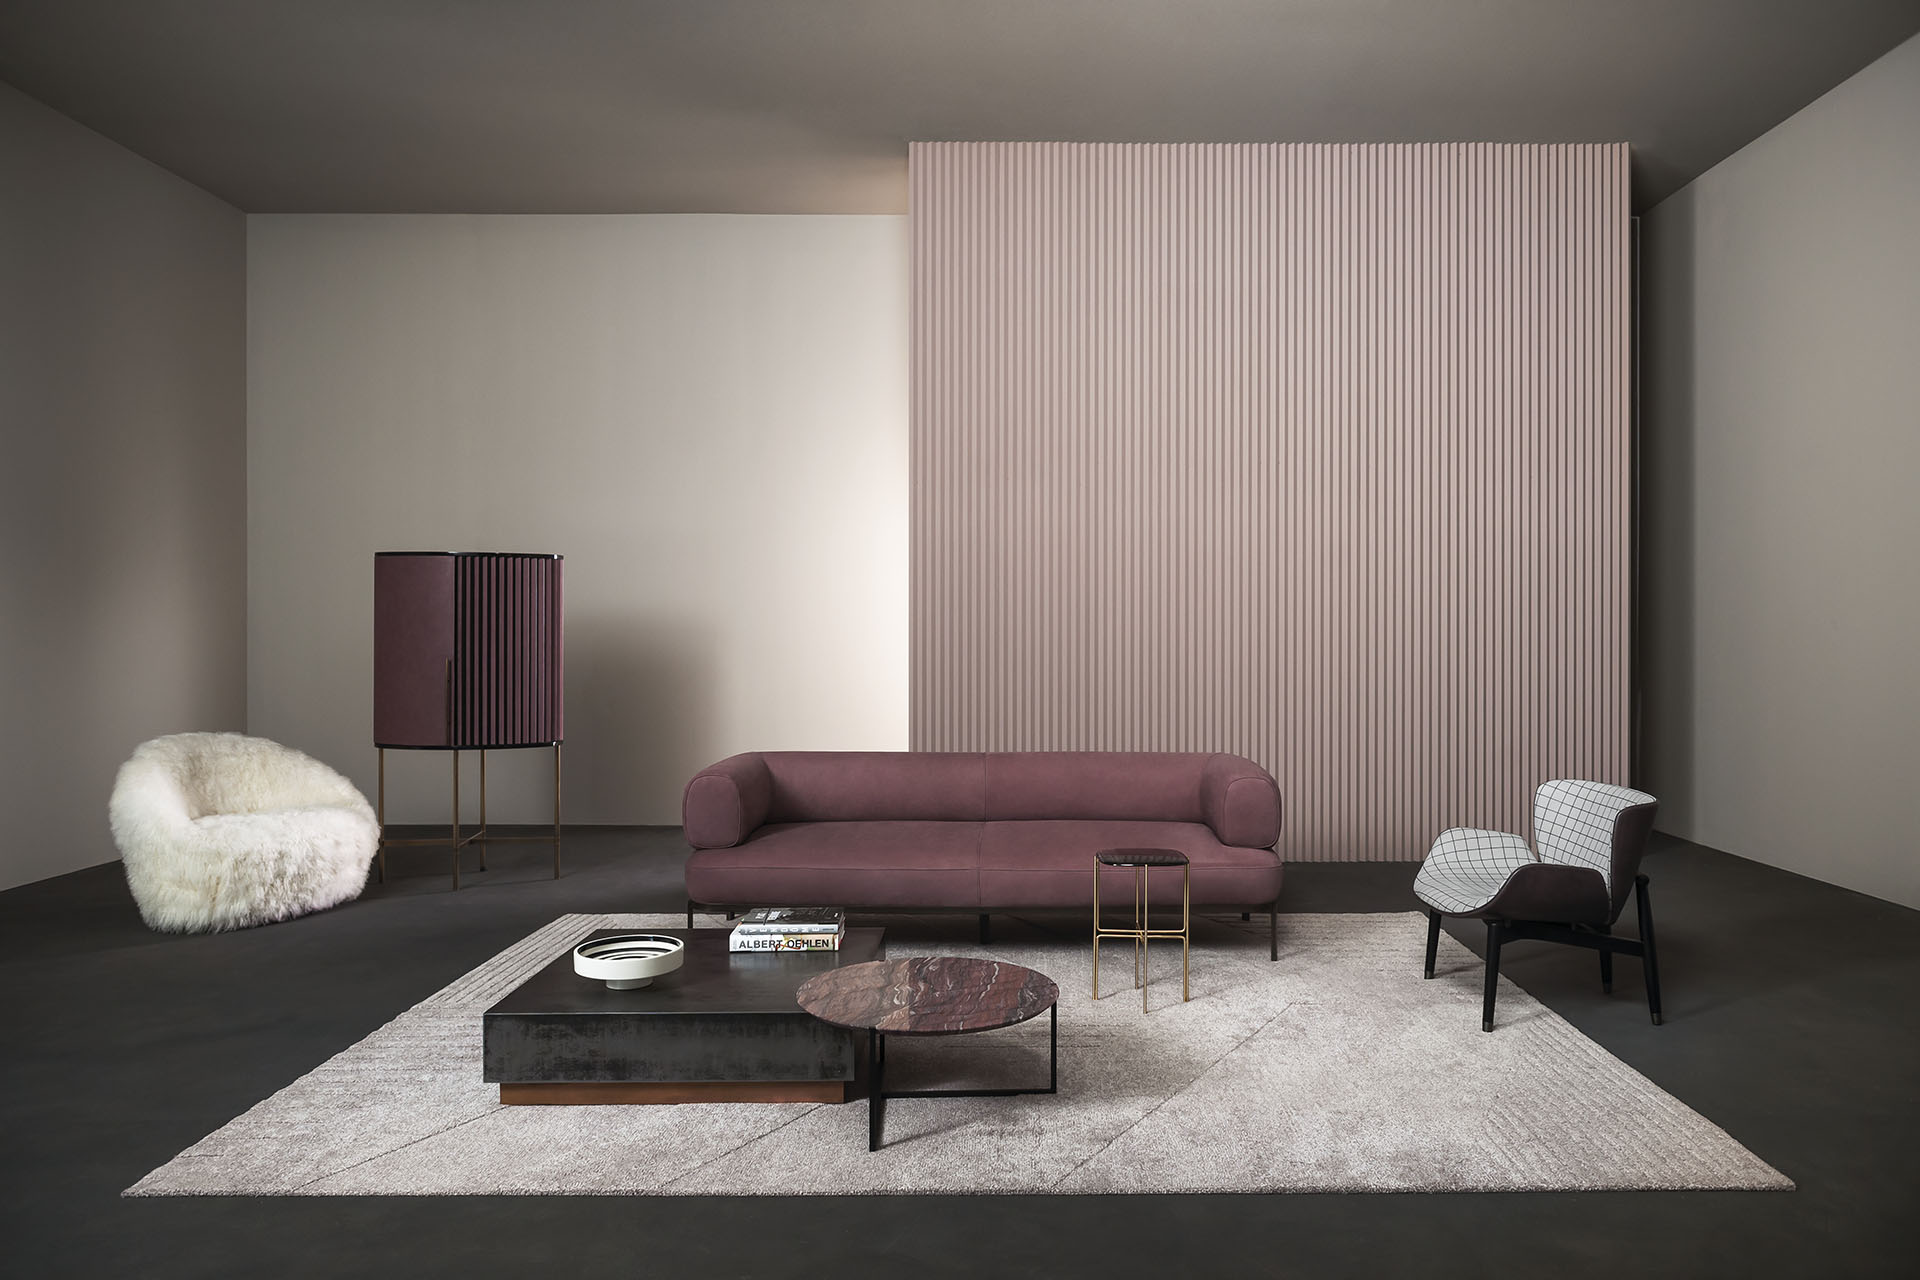 Full Size of Baxter Sofa Harvey Norman Paola Navone Chester Moon Furniture List Tactile Jonathan Adler Viktor Couch Ez Living Made In Italy Criteria Collection 2er Gelb Sofa Baxter Sofa